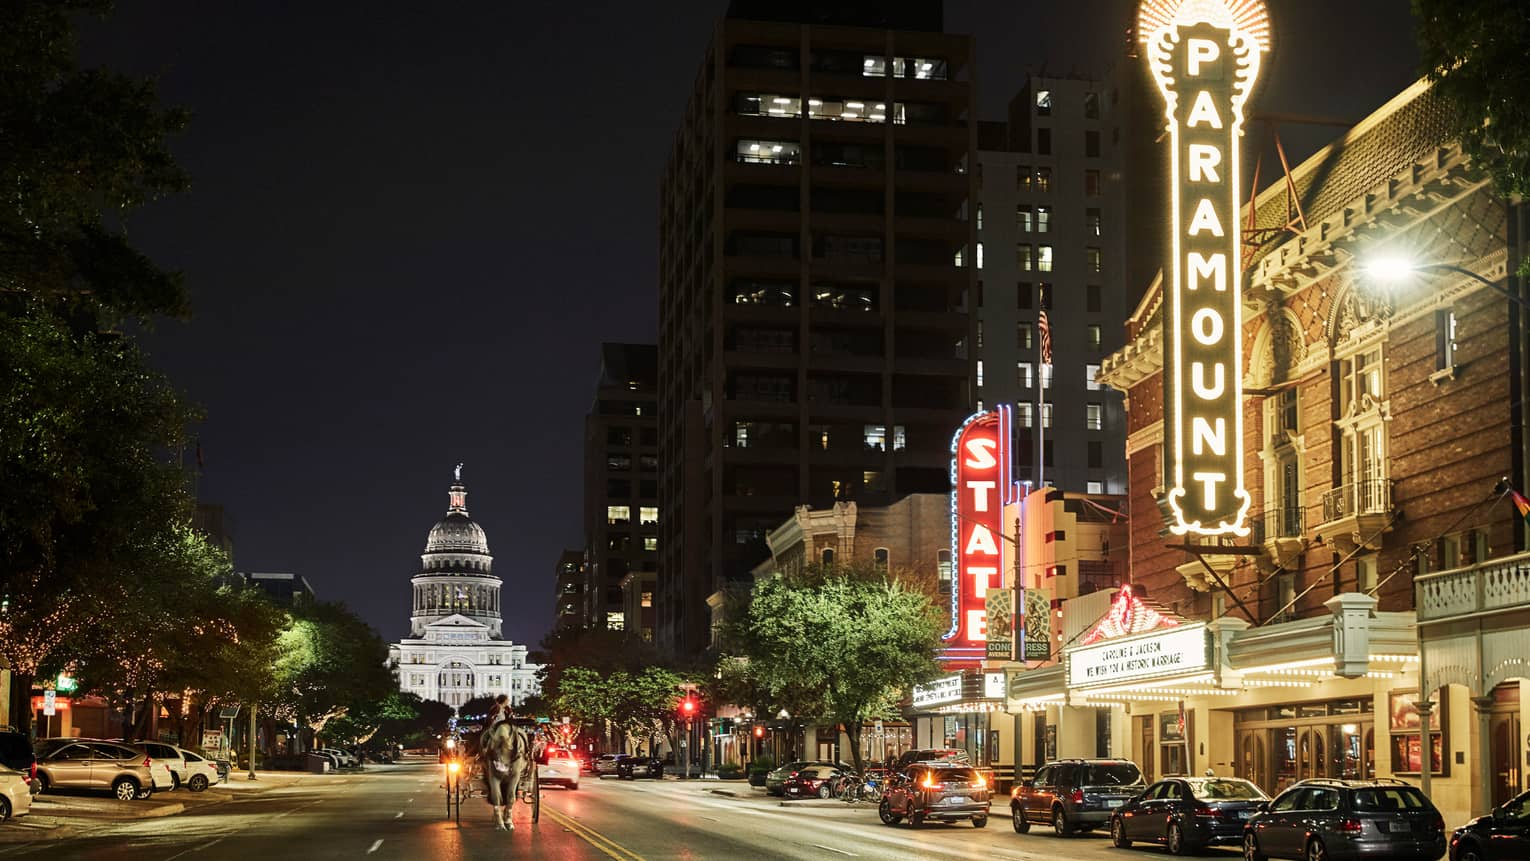 Horse, buggy in front of Texas State Capitol building, Paramount Theatre lights at night